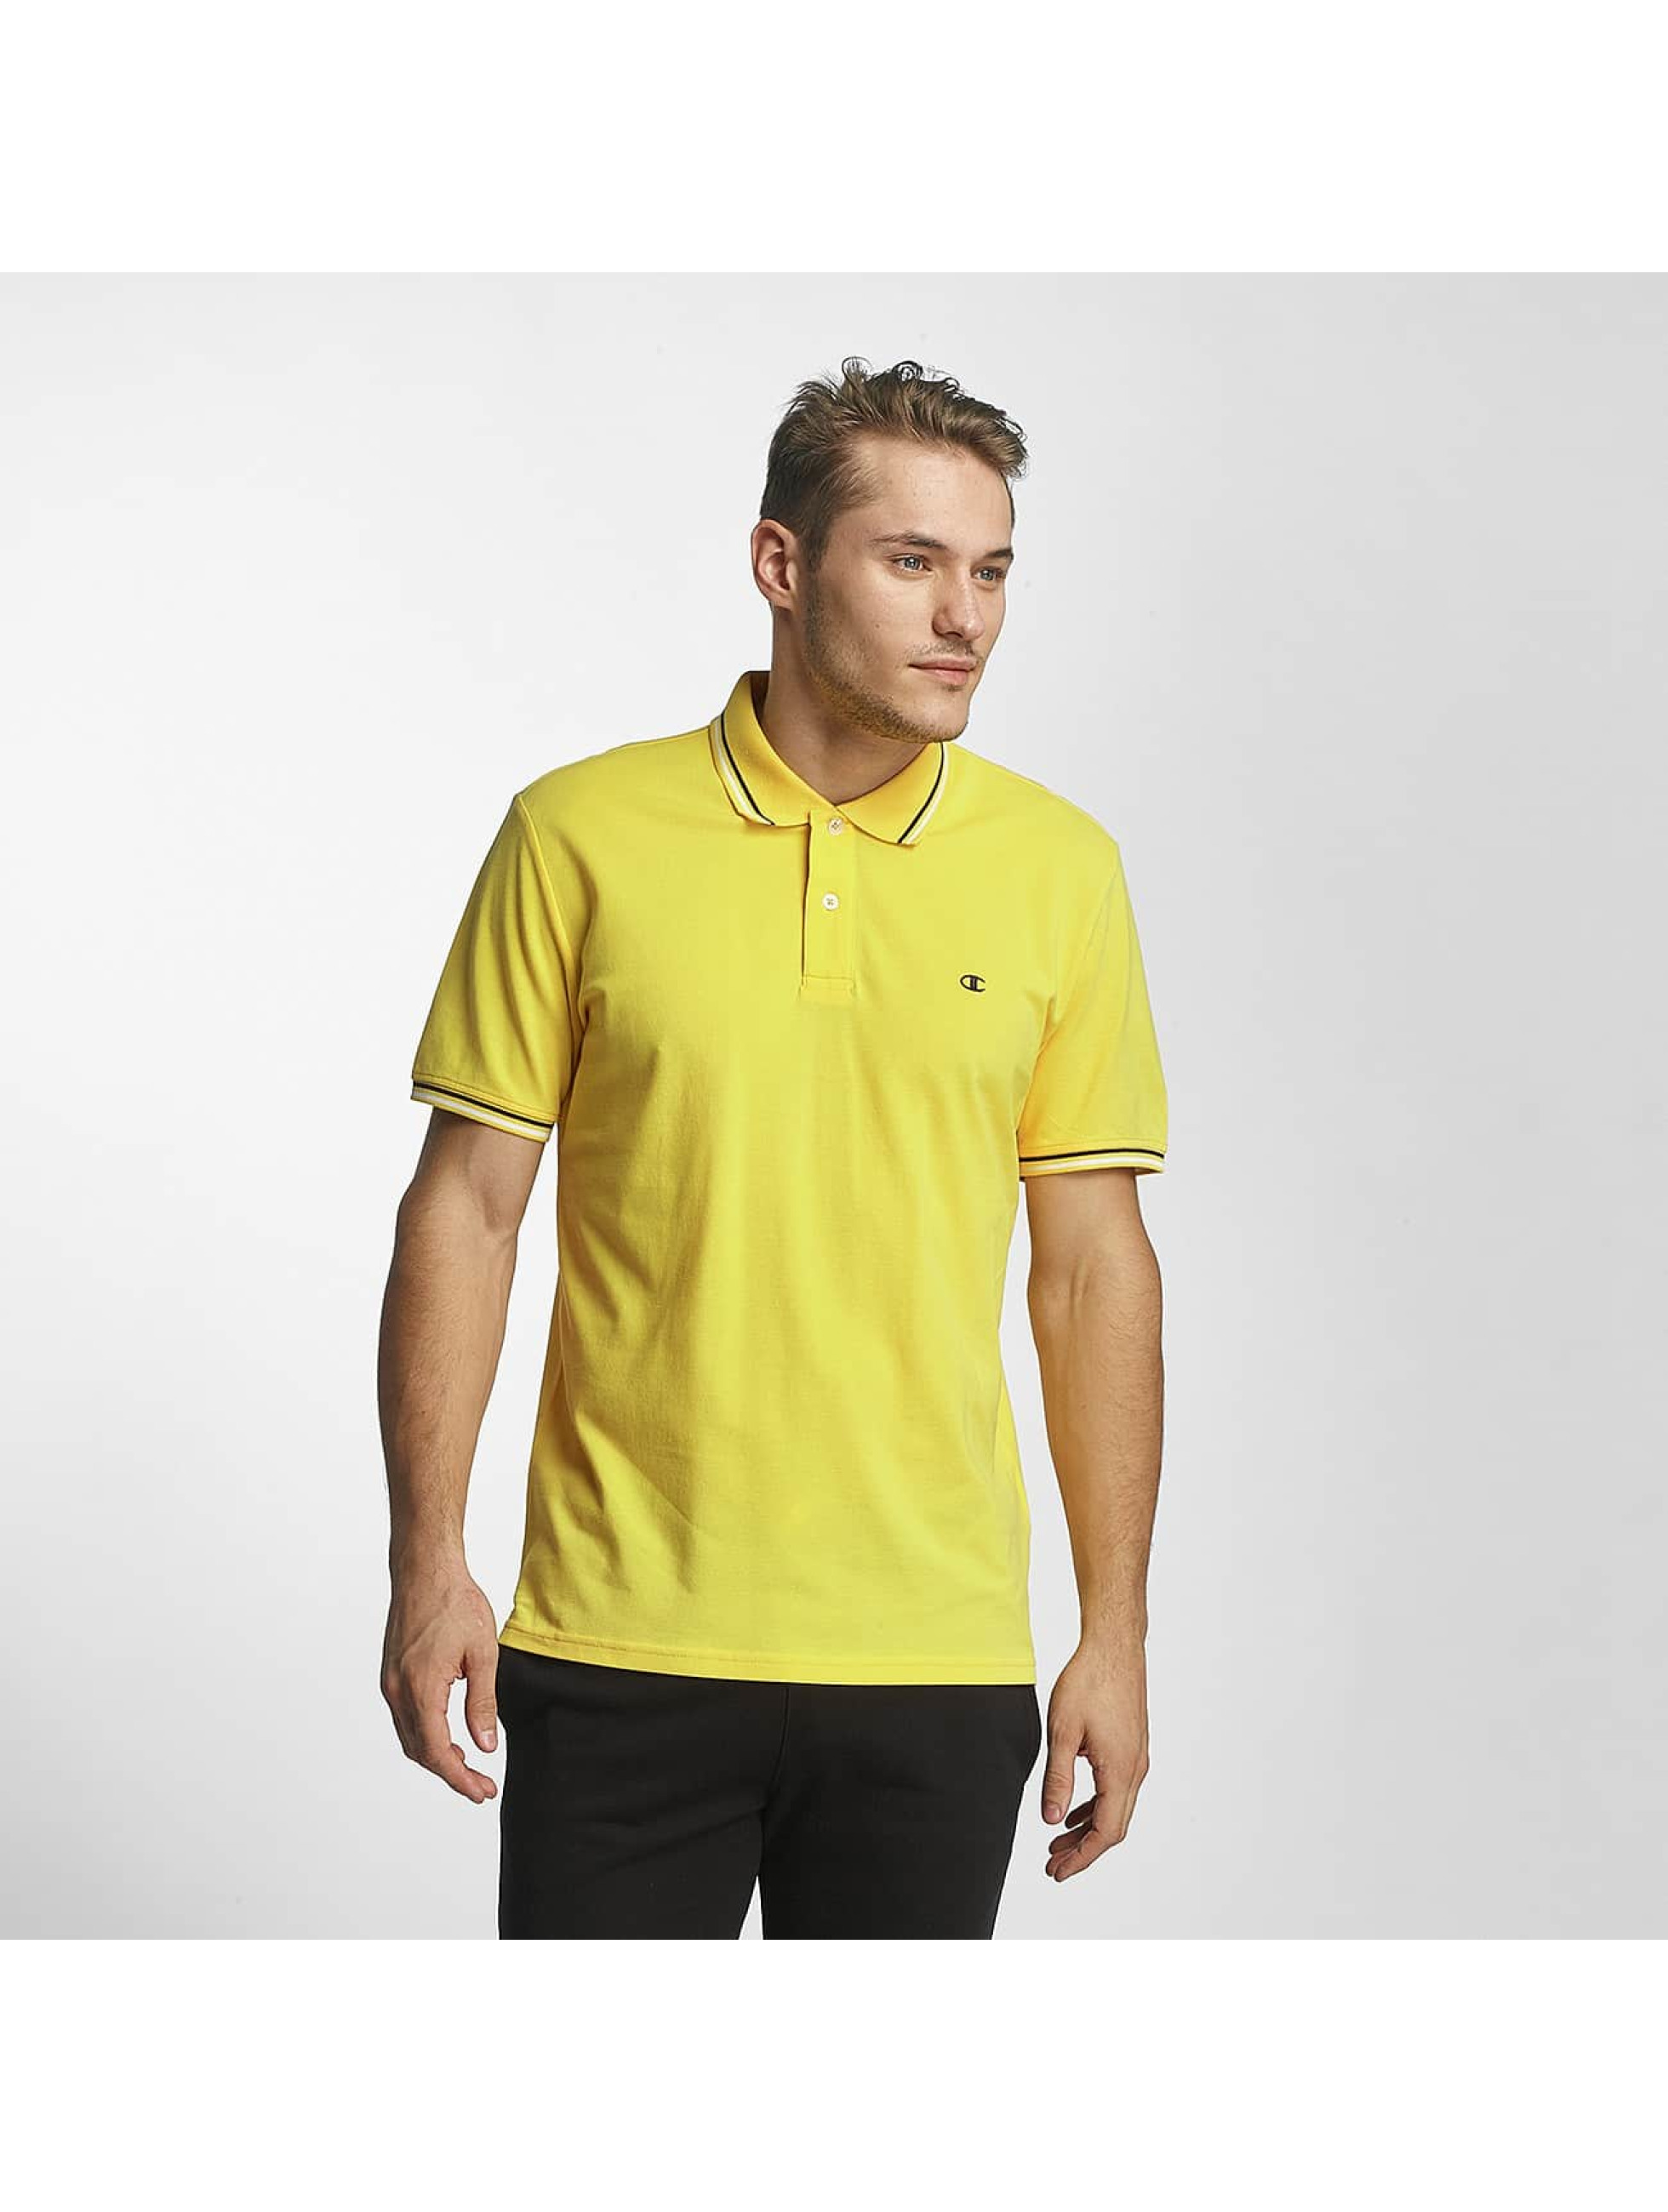 Champion Athletics Männer Poloshirt Metropolitan in gelb